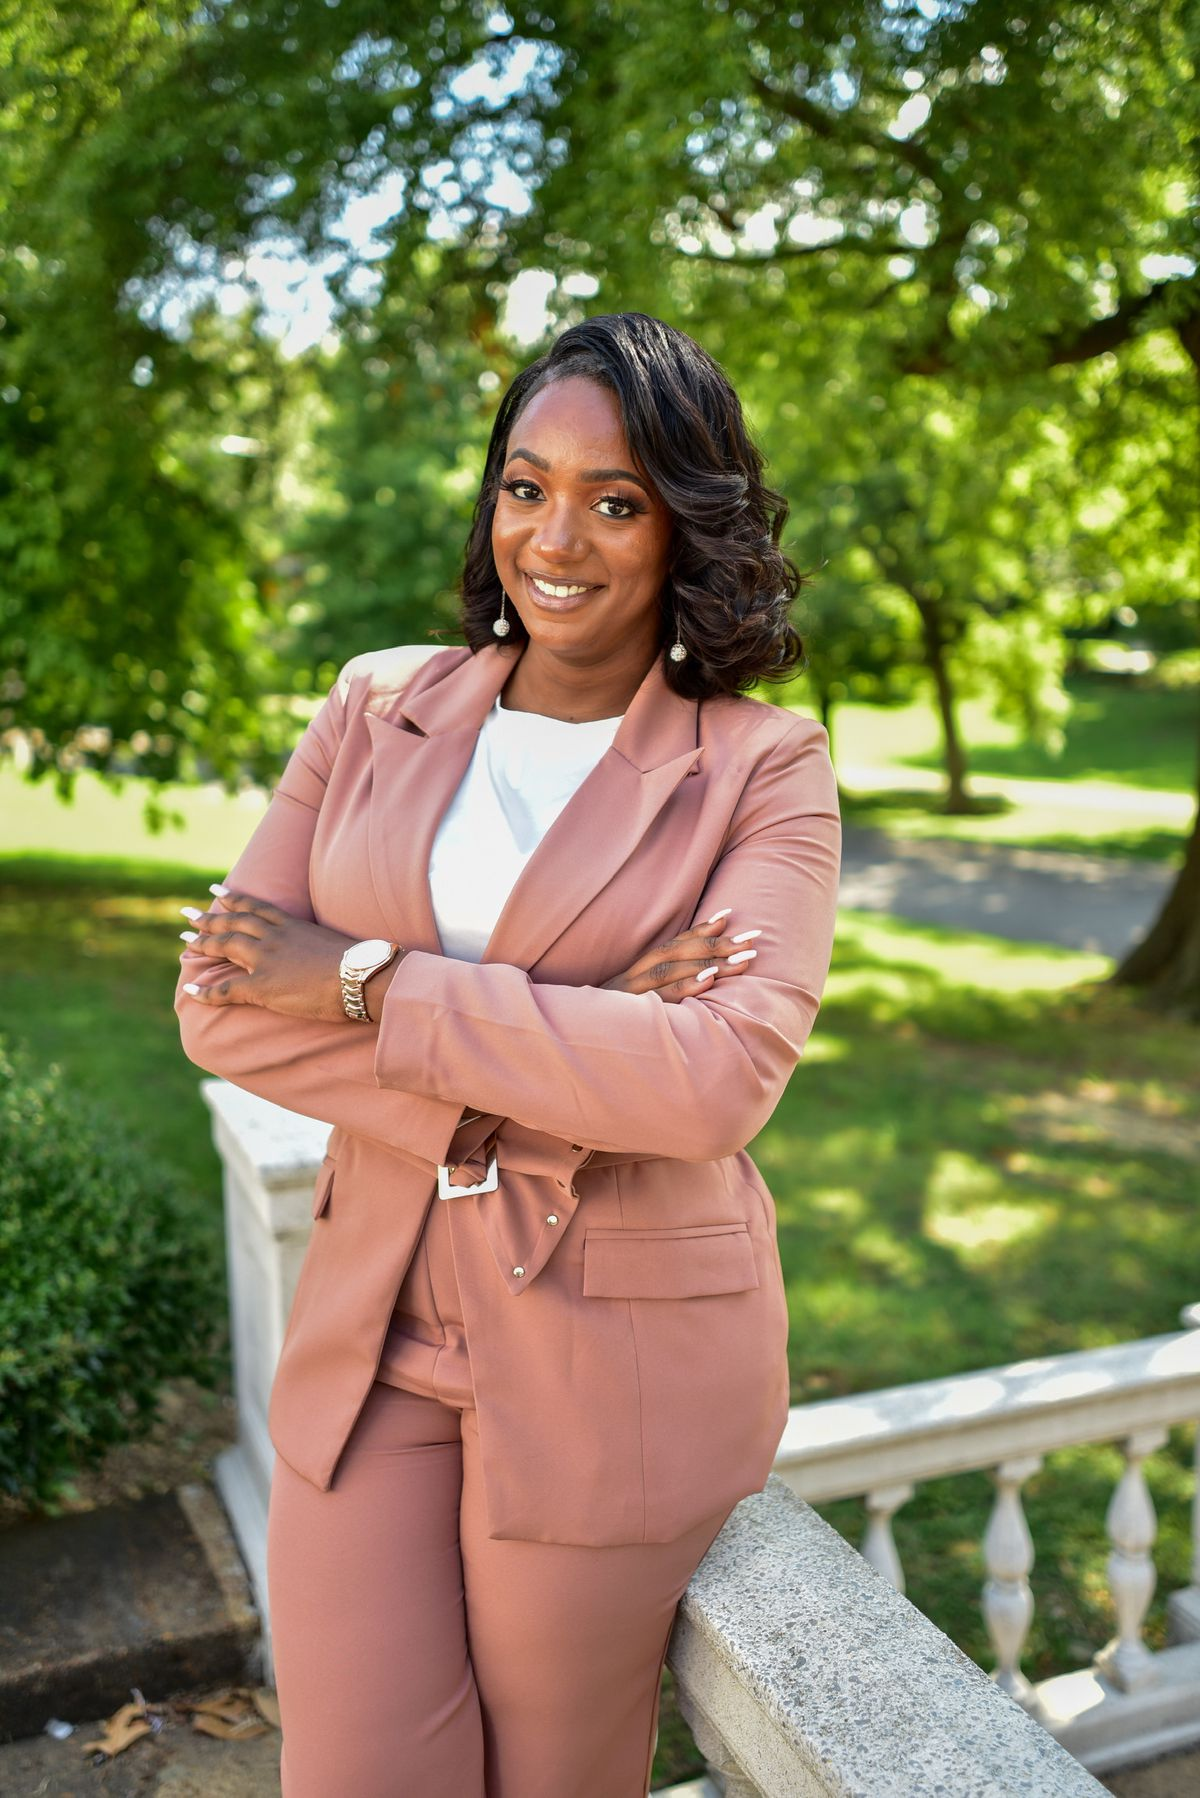 Tennessee Representative London Lamar smiles for a portrait outdoors with her arms crossed.